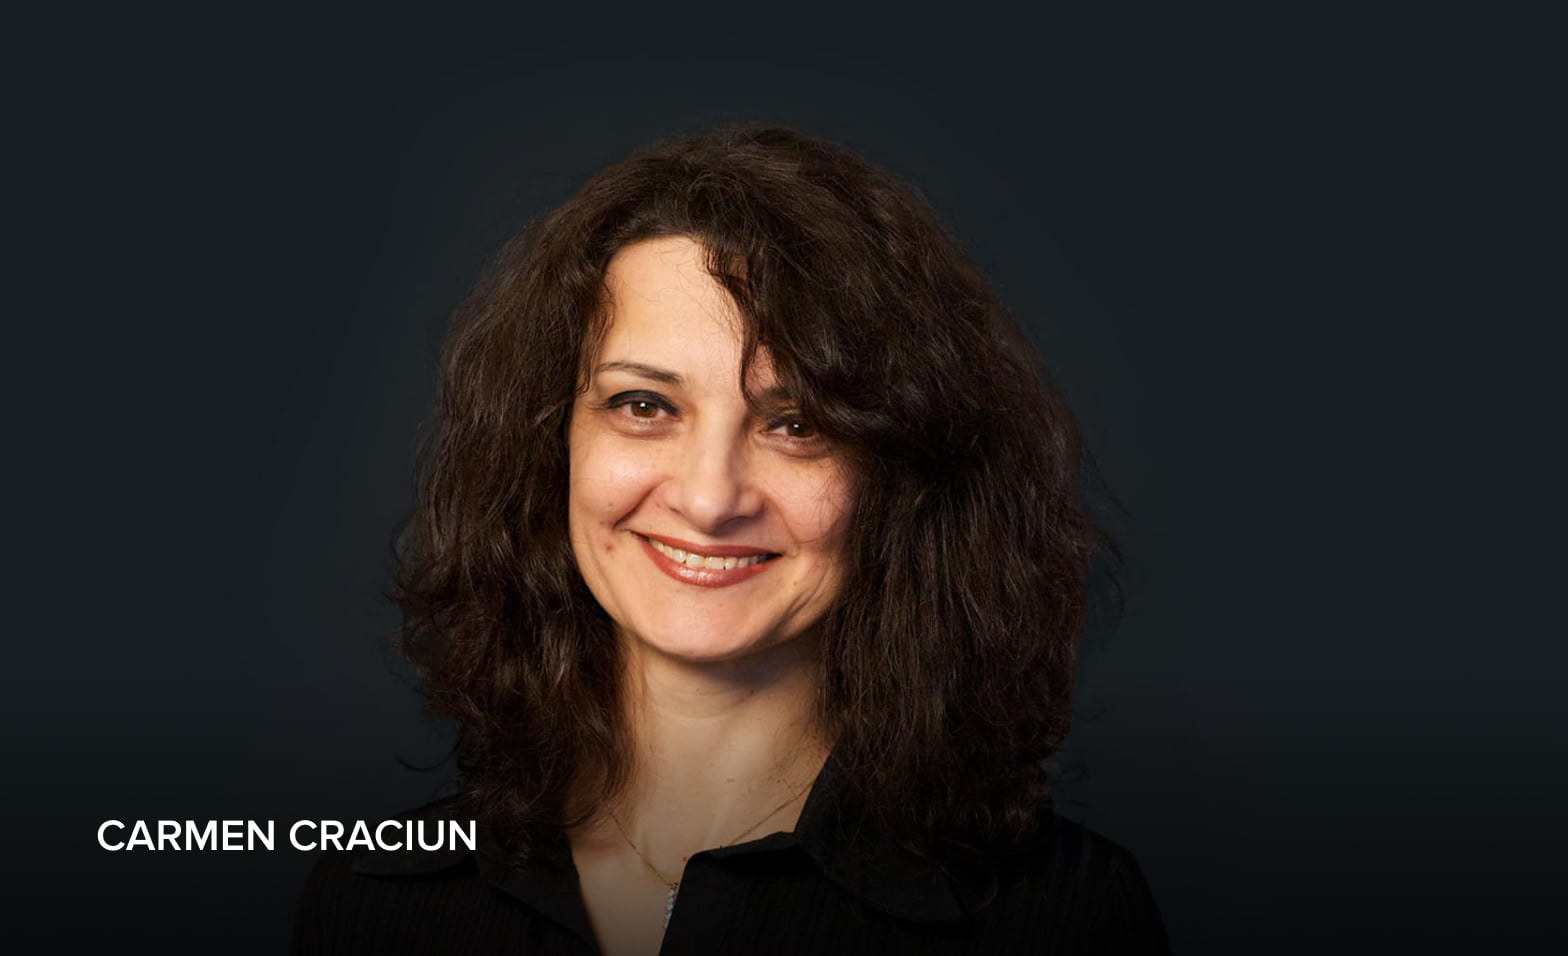 A headshot of Carmen Craciun, Infrastructure Architect